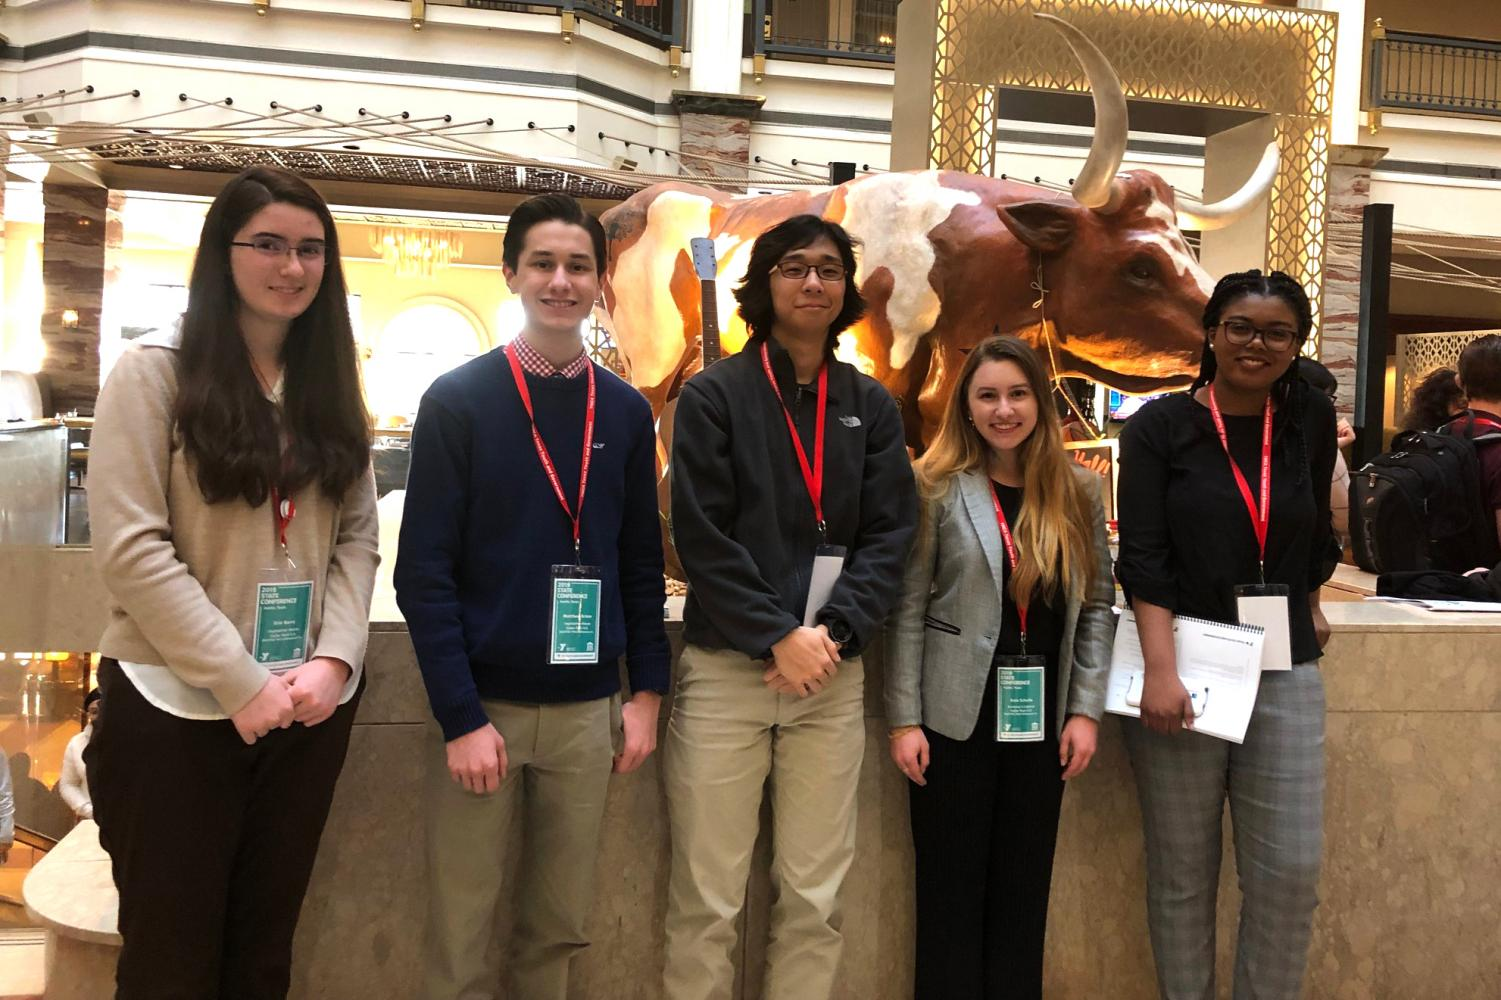 Juniors Erin Barry and  Matthew Grimm, senior Alden Yi, sophomore Kate Schulle and senior Kayla Frazier pose at the Texas Youth and Government State competition. All five members joined the club to pursue their passions in government and politics.